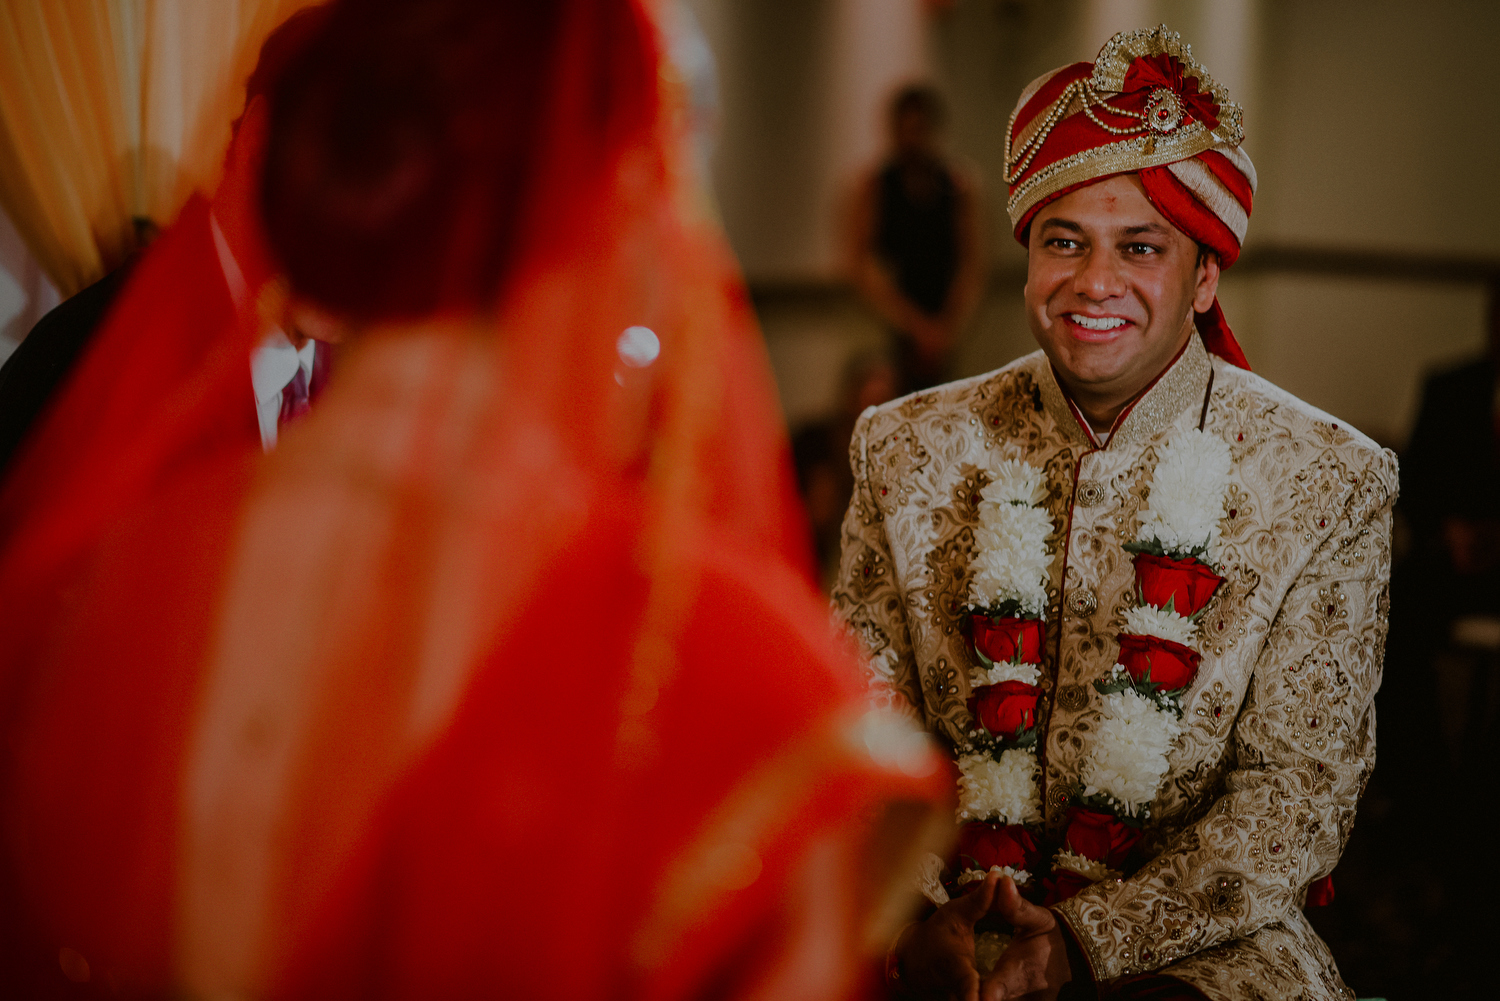 groom looks lovingly at bride during indian wedding ceremony